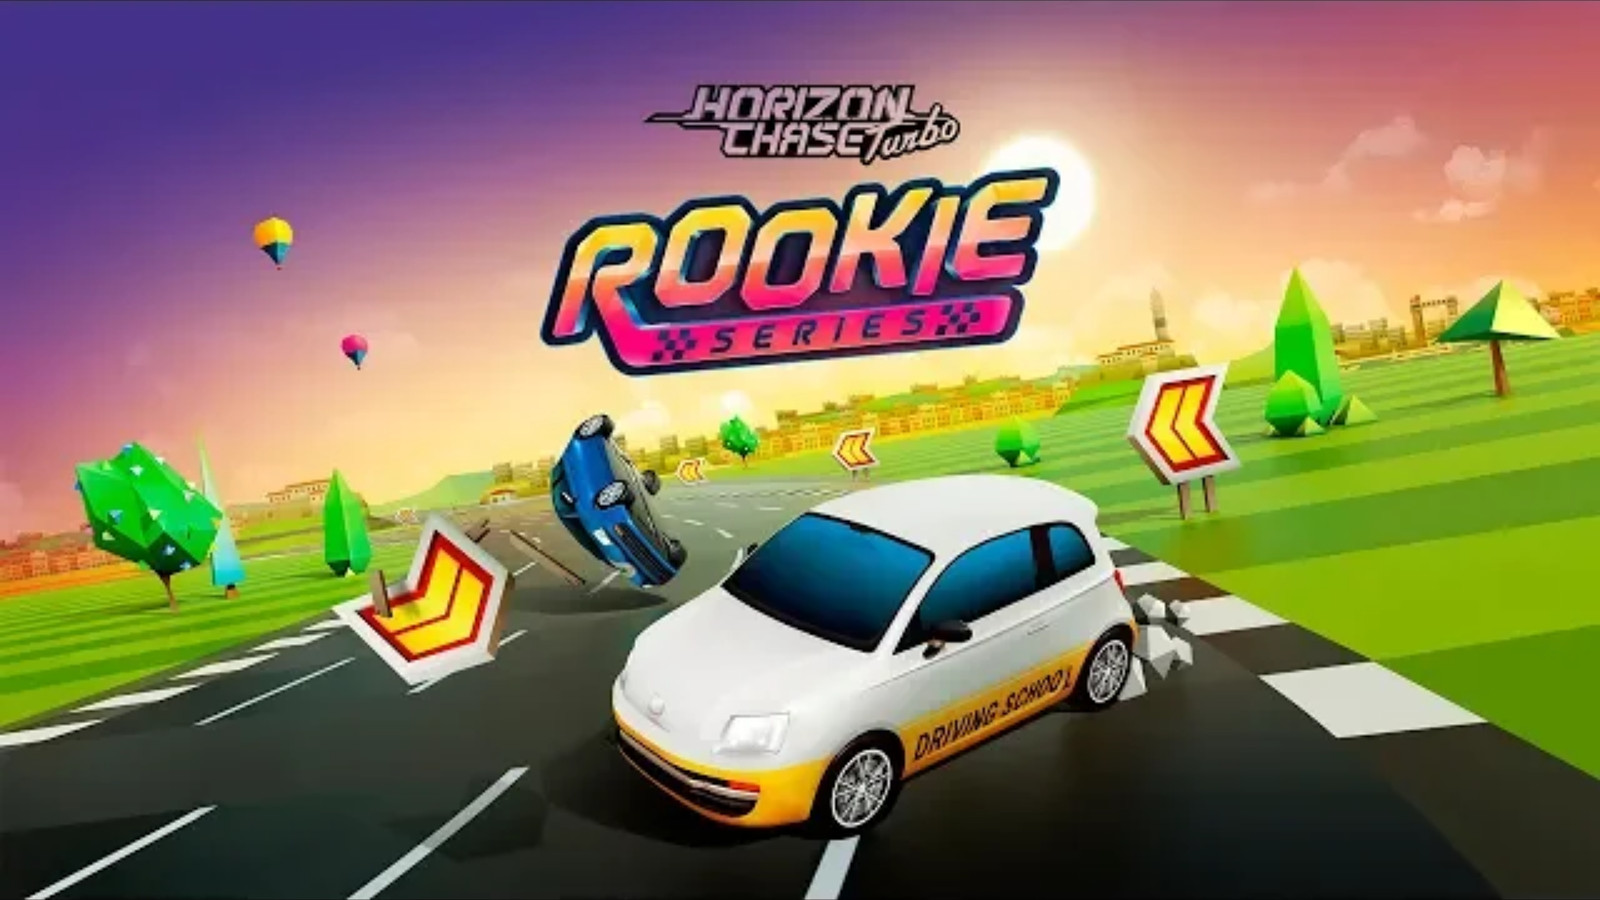 Horizon Chase Turbo - Rookie Series